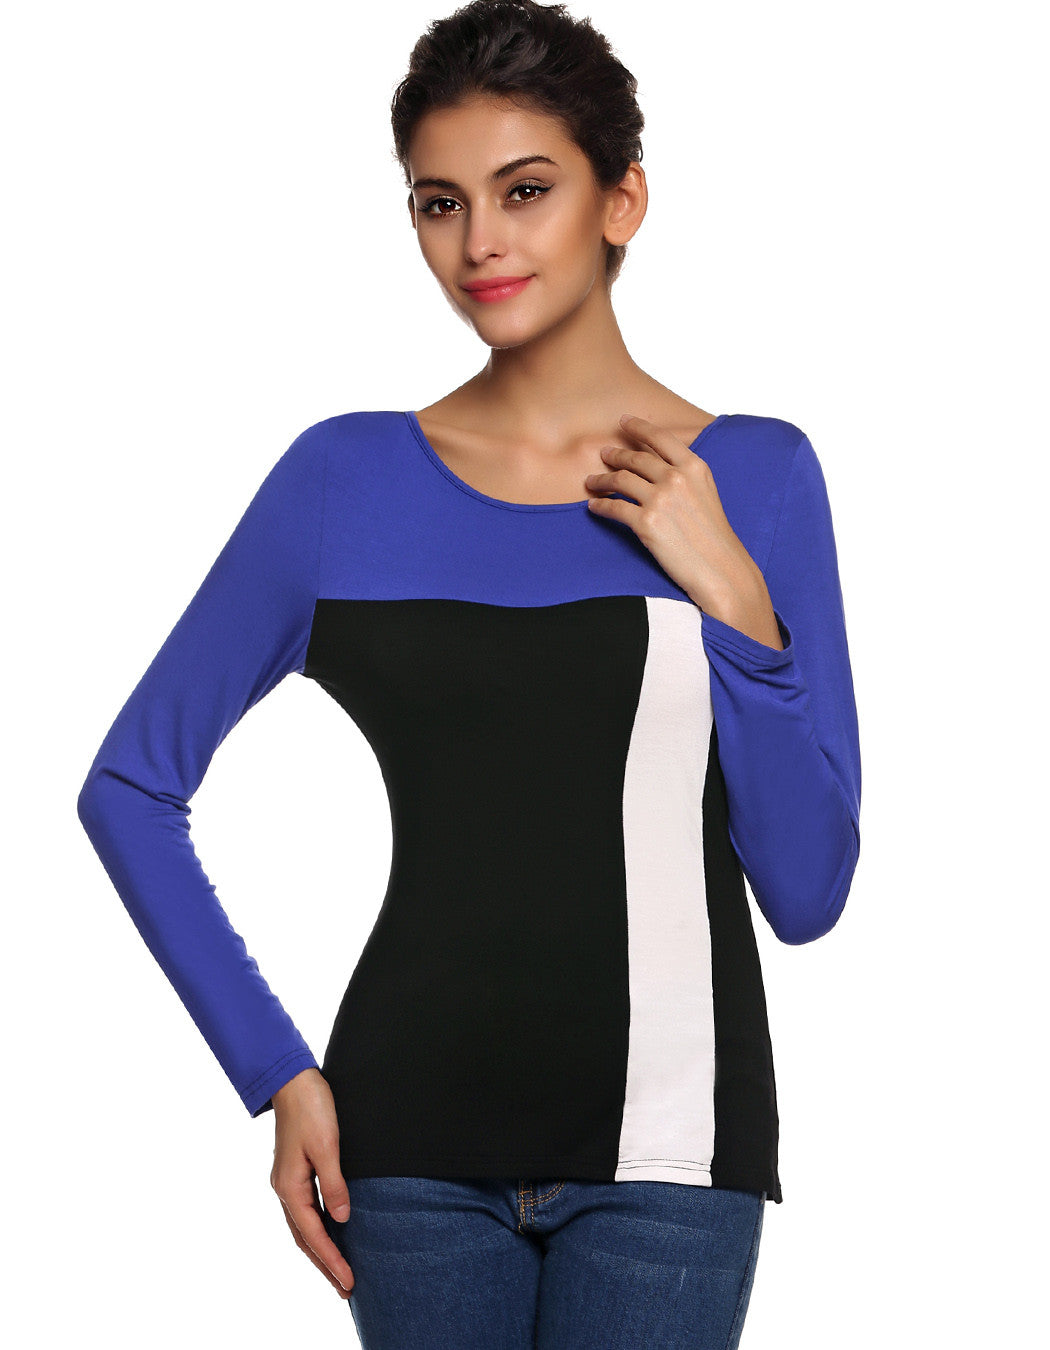 Finejo Stylish Ladies Casual Splicing Contrast Color O-Neck Long Sleev-iuly.com